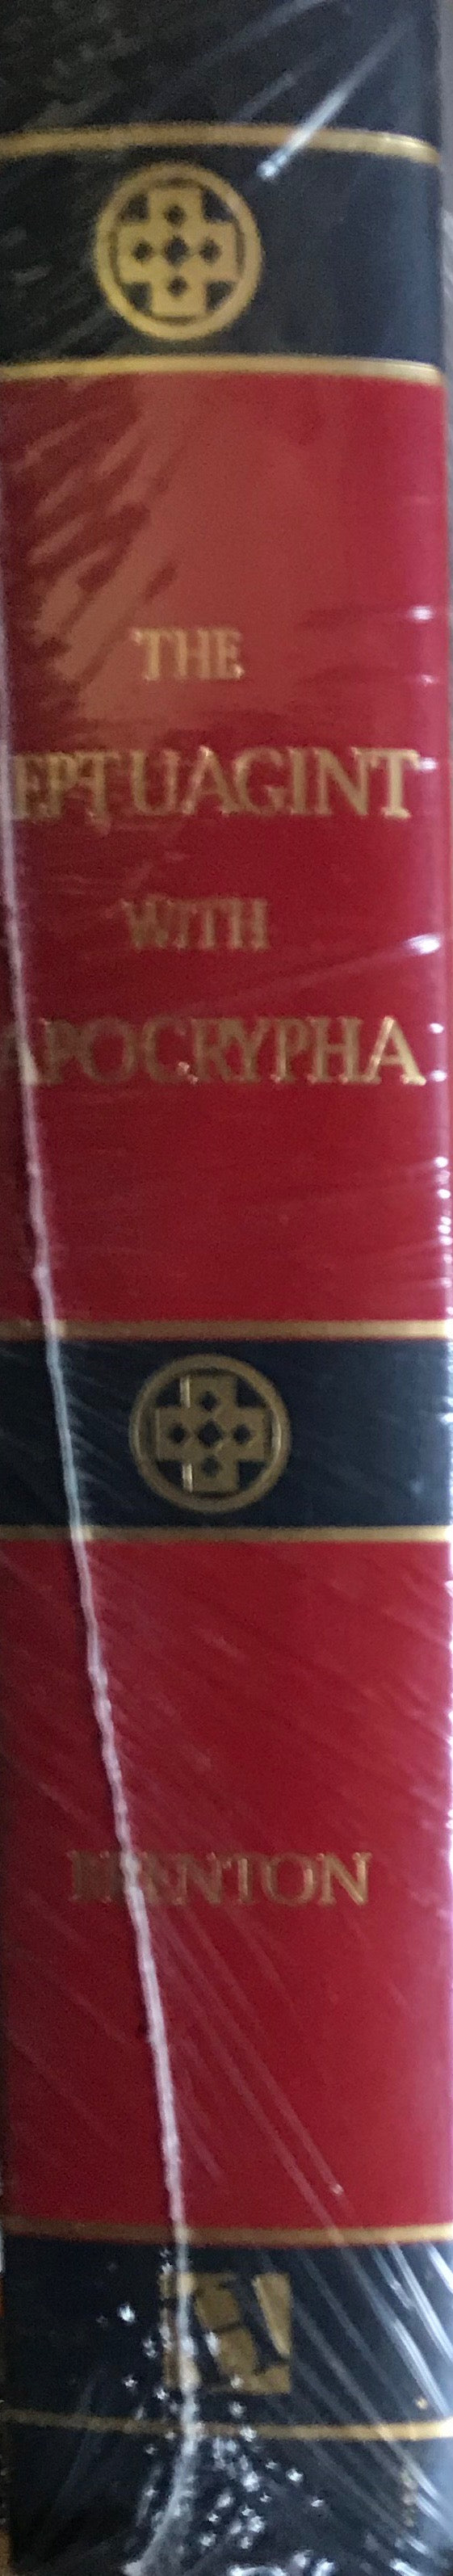 The Septuagint with Apocrypha, Greek and English